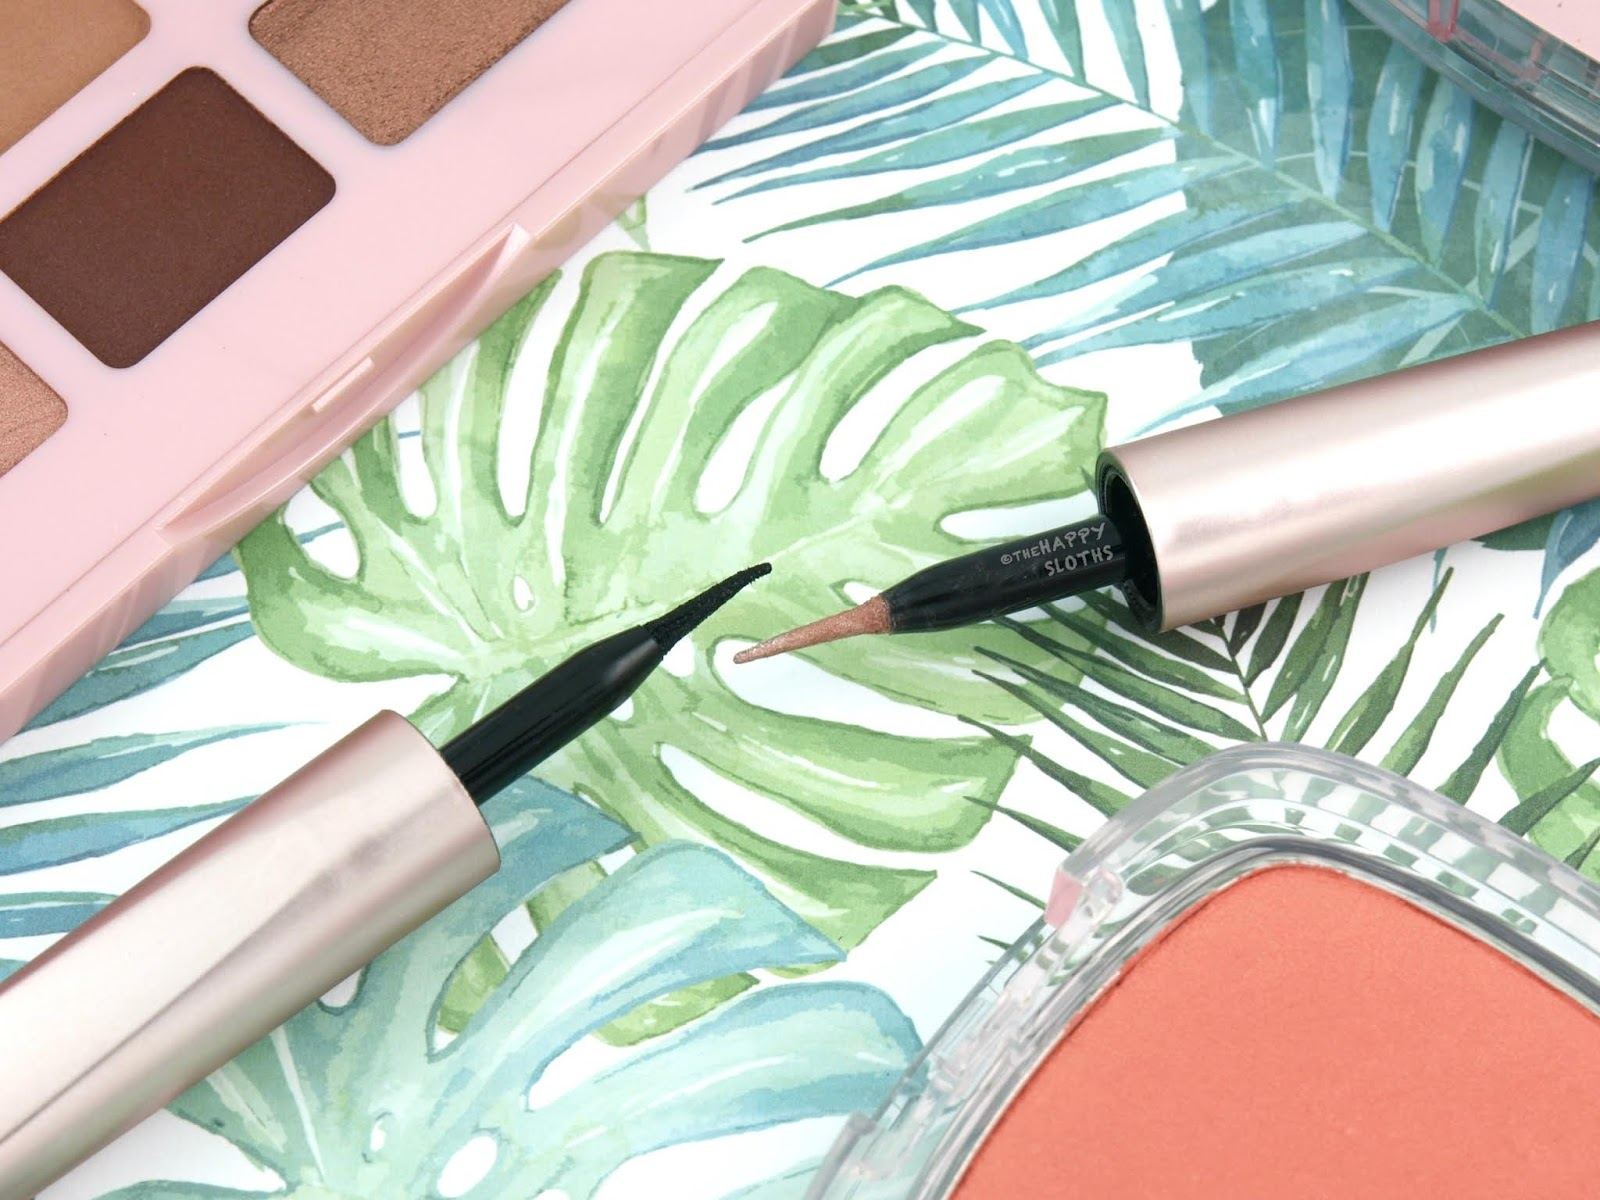 L'Oreal | Voluminous Lash Paradise Liquid Eyeliner: Review and Swatches